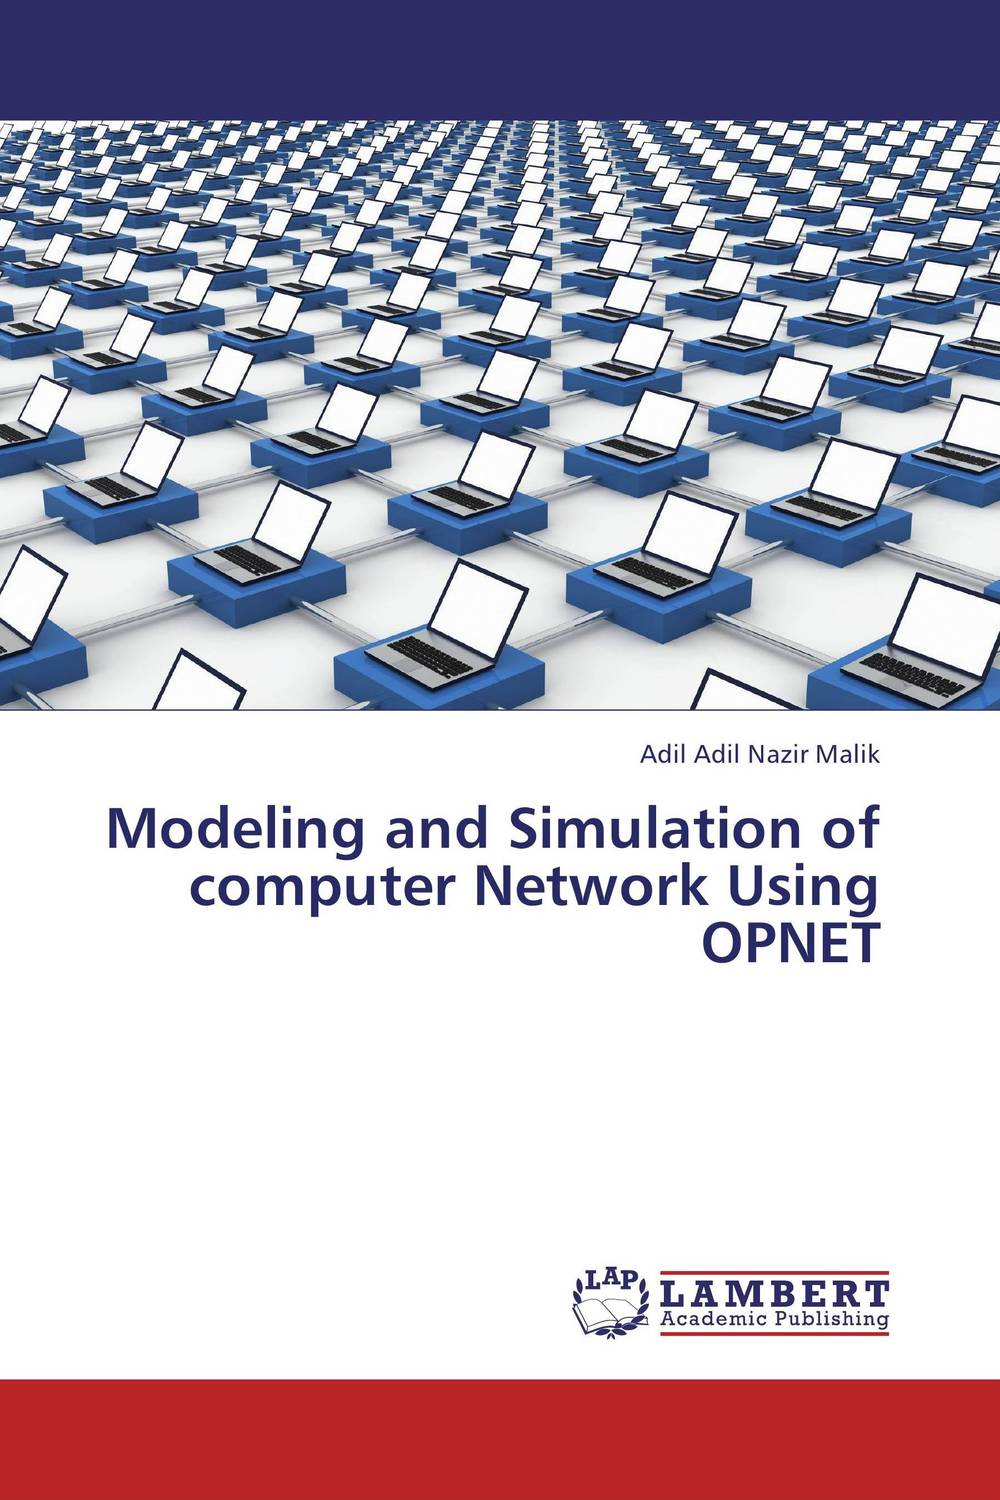 цена Modeling and Simulation of computer Network Using OPNET